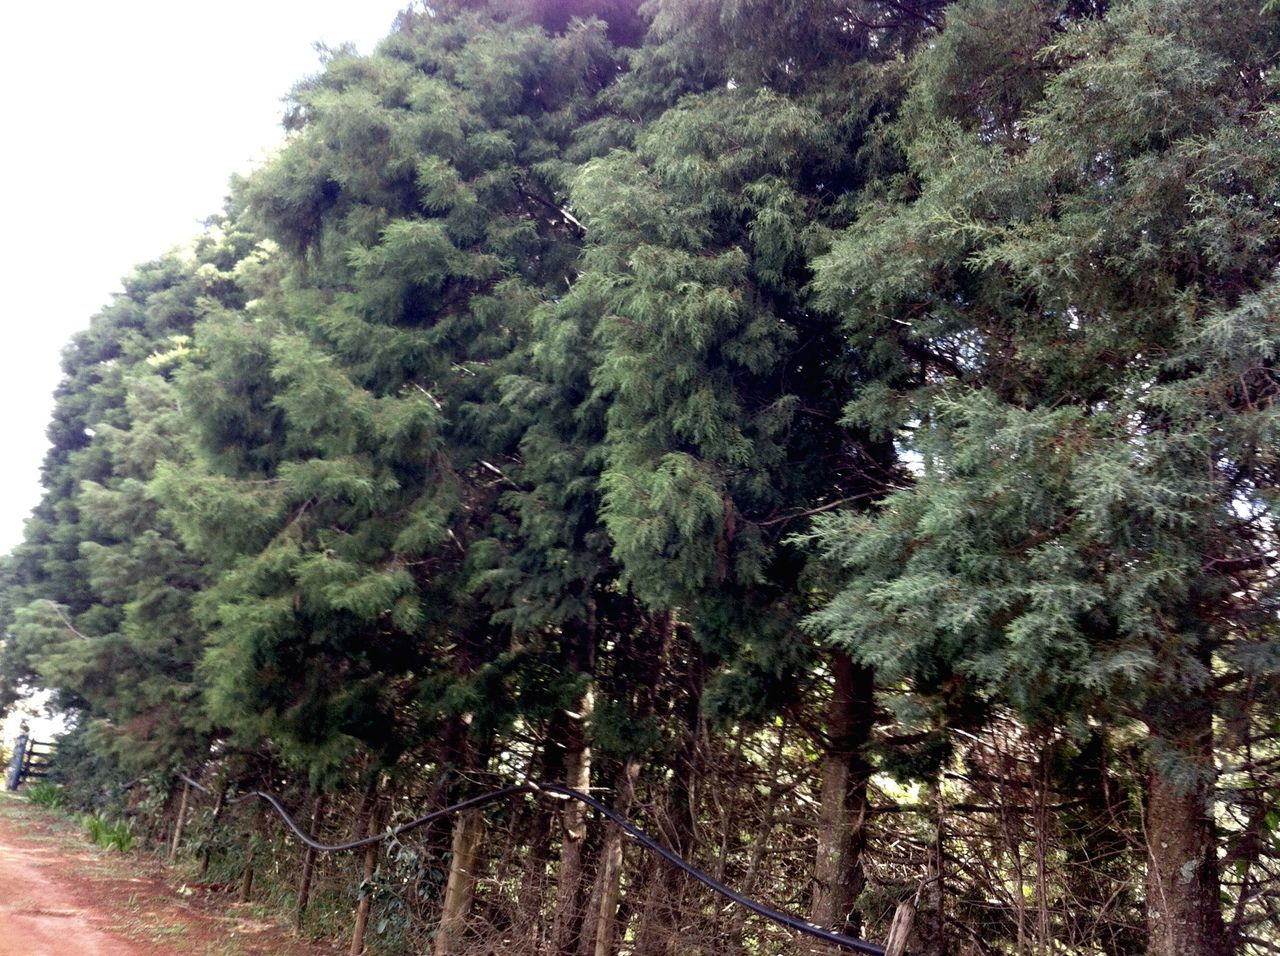 tree, growth, no people, nature, day, green color, outdoors, beauty in nature, sky, close-up